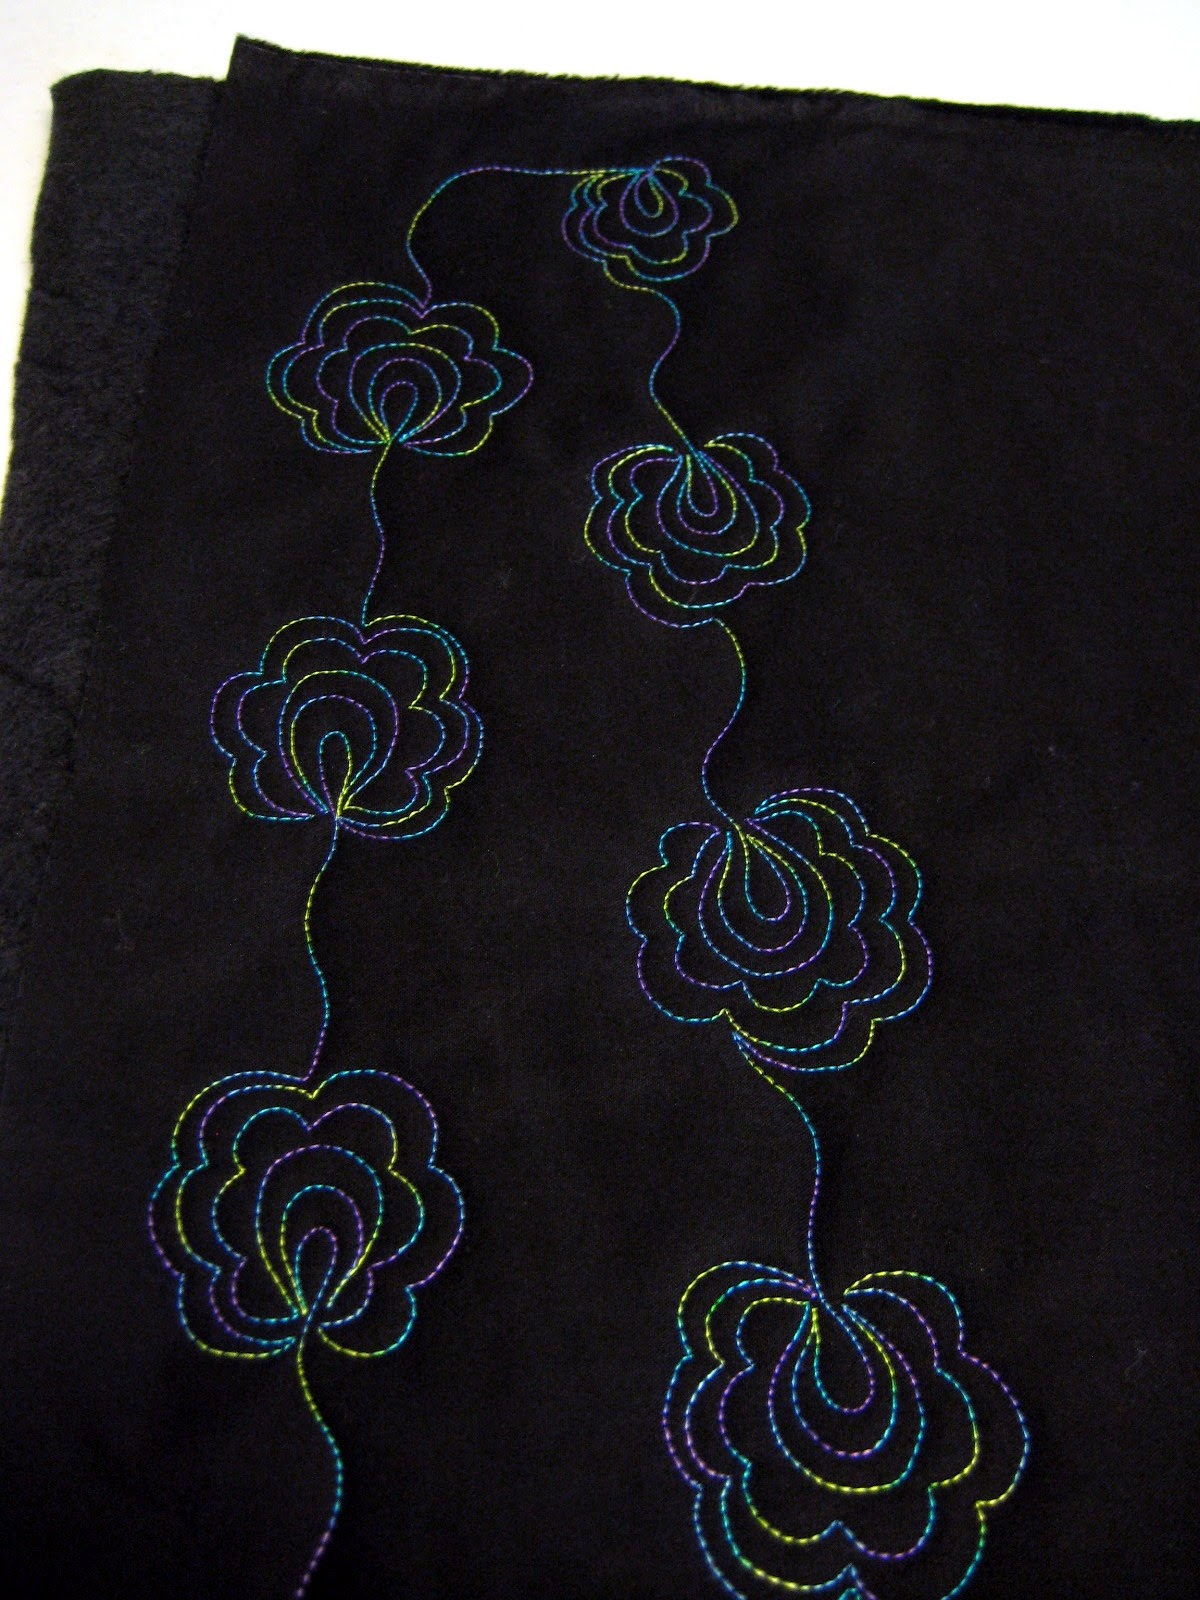 Linear scroll flowers